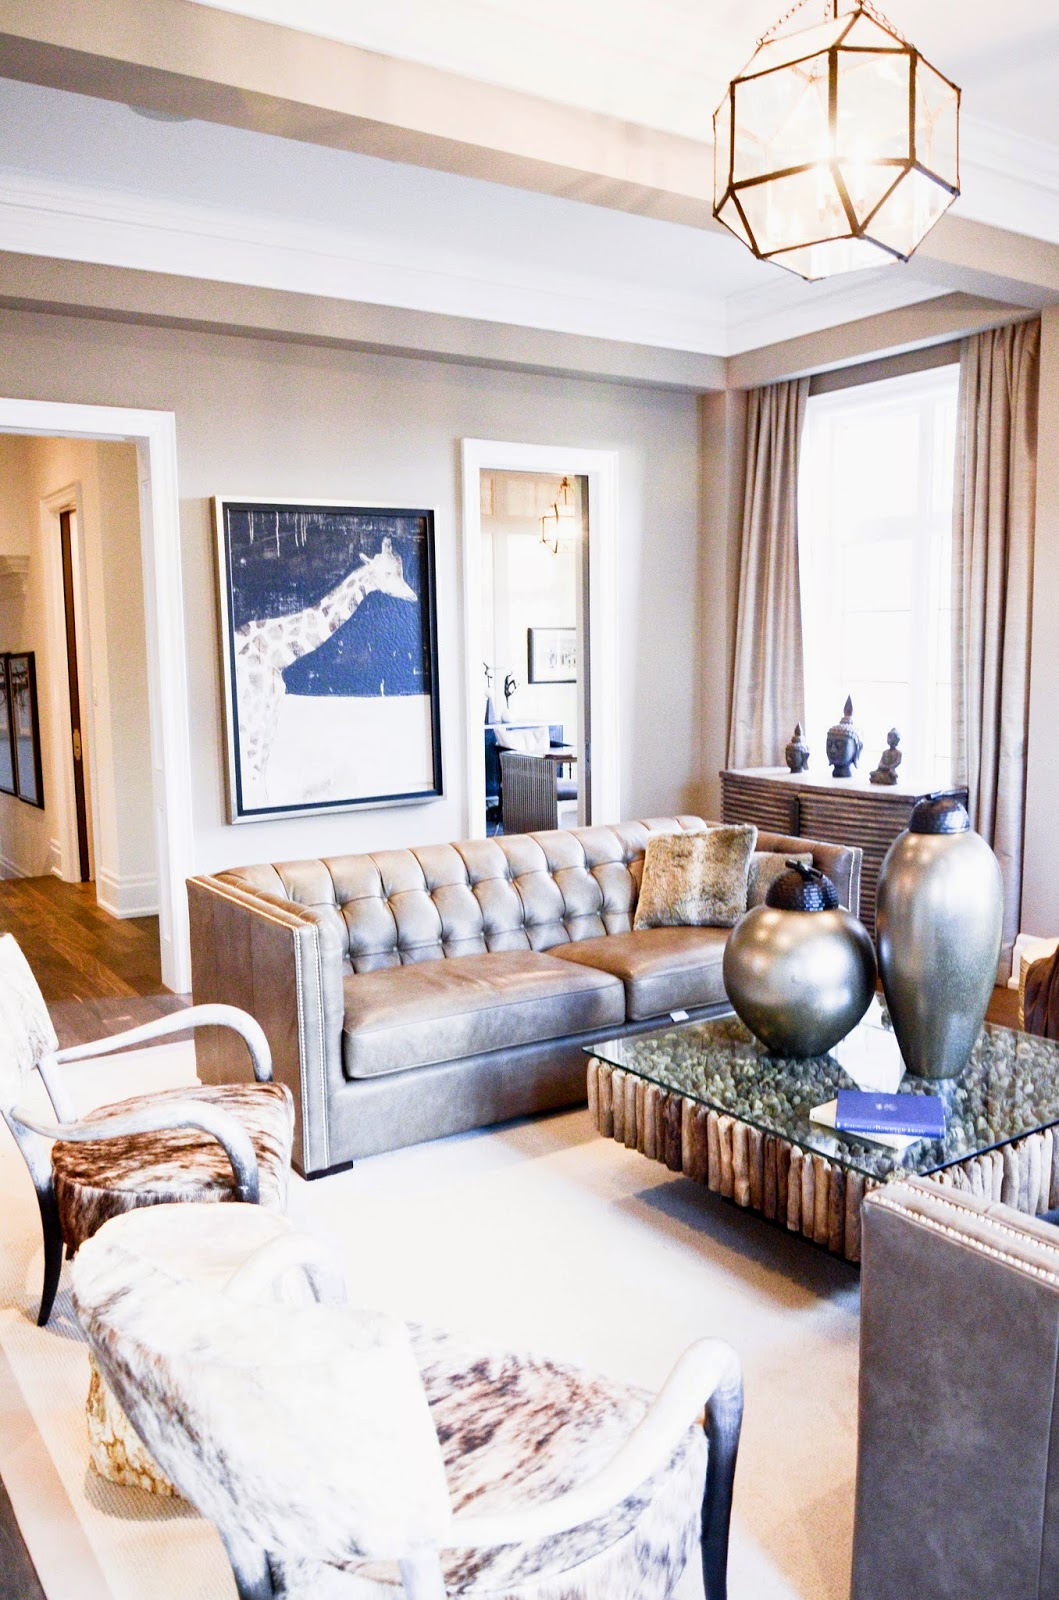 PMLOTTO KLEINBURG SHOWROOM: Cozy neutral and luxurious Family Room